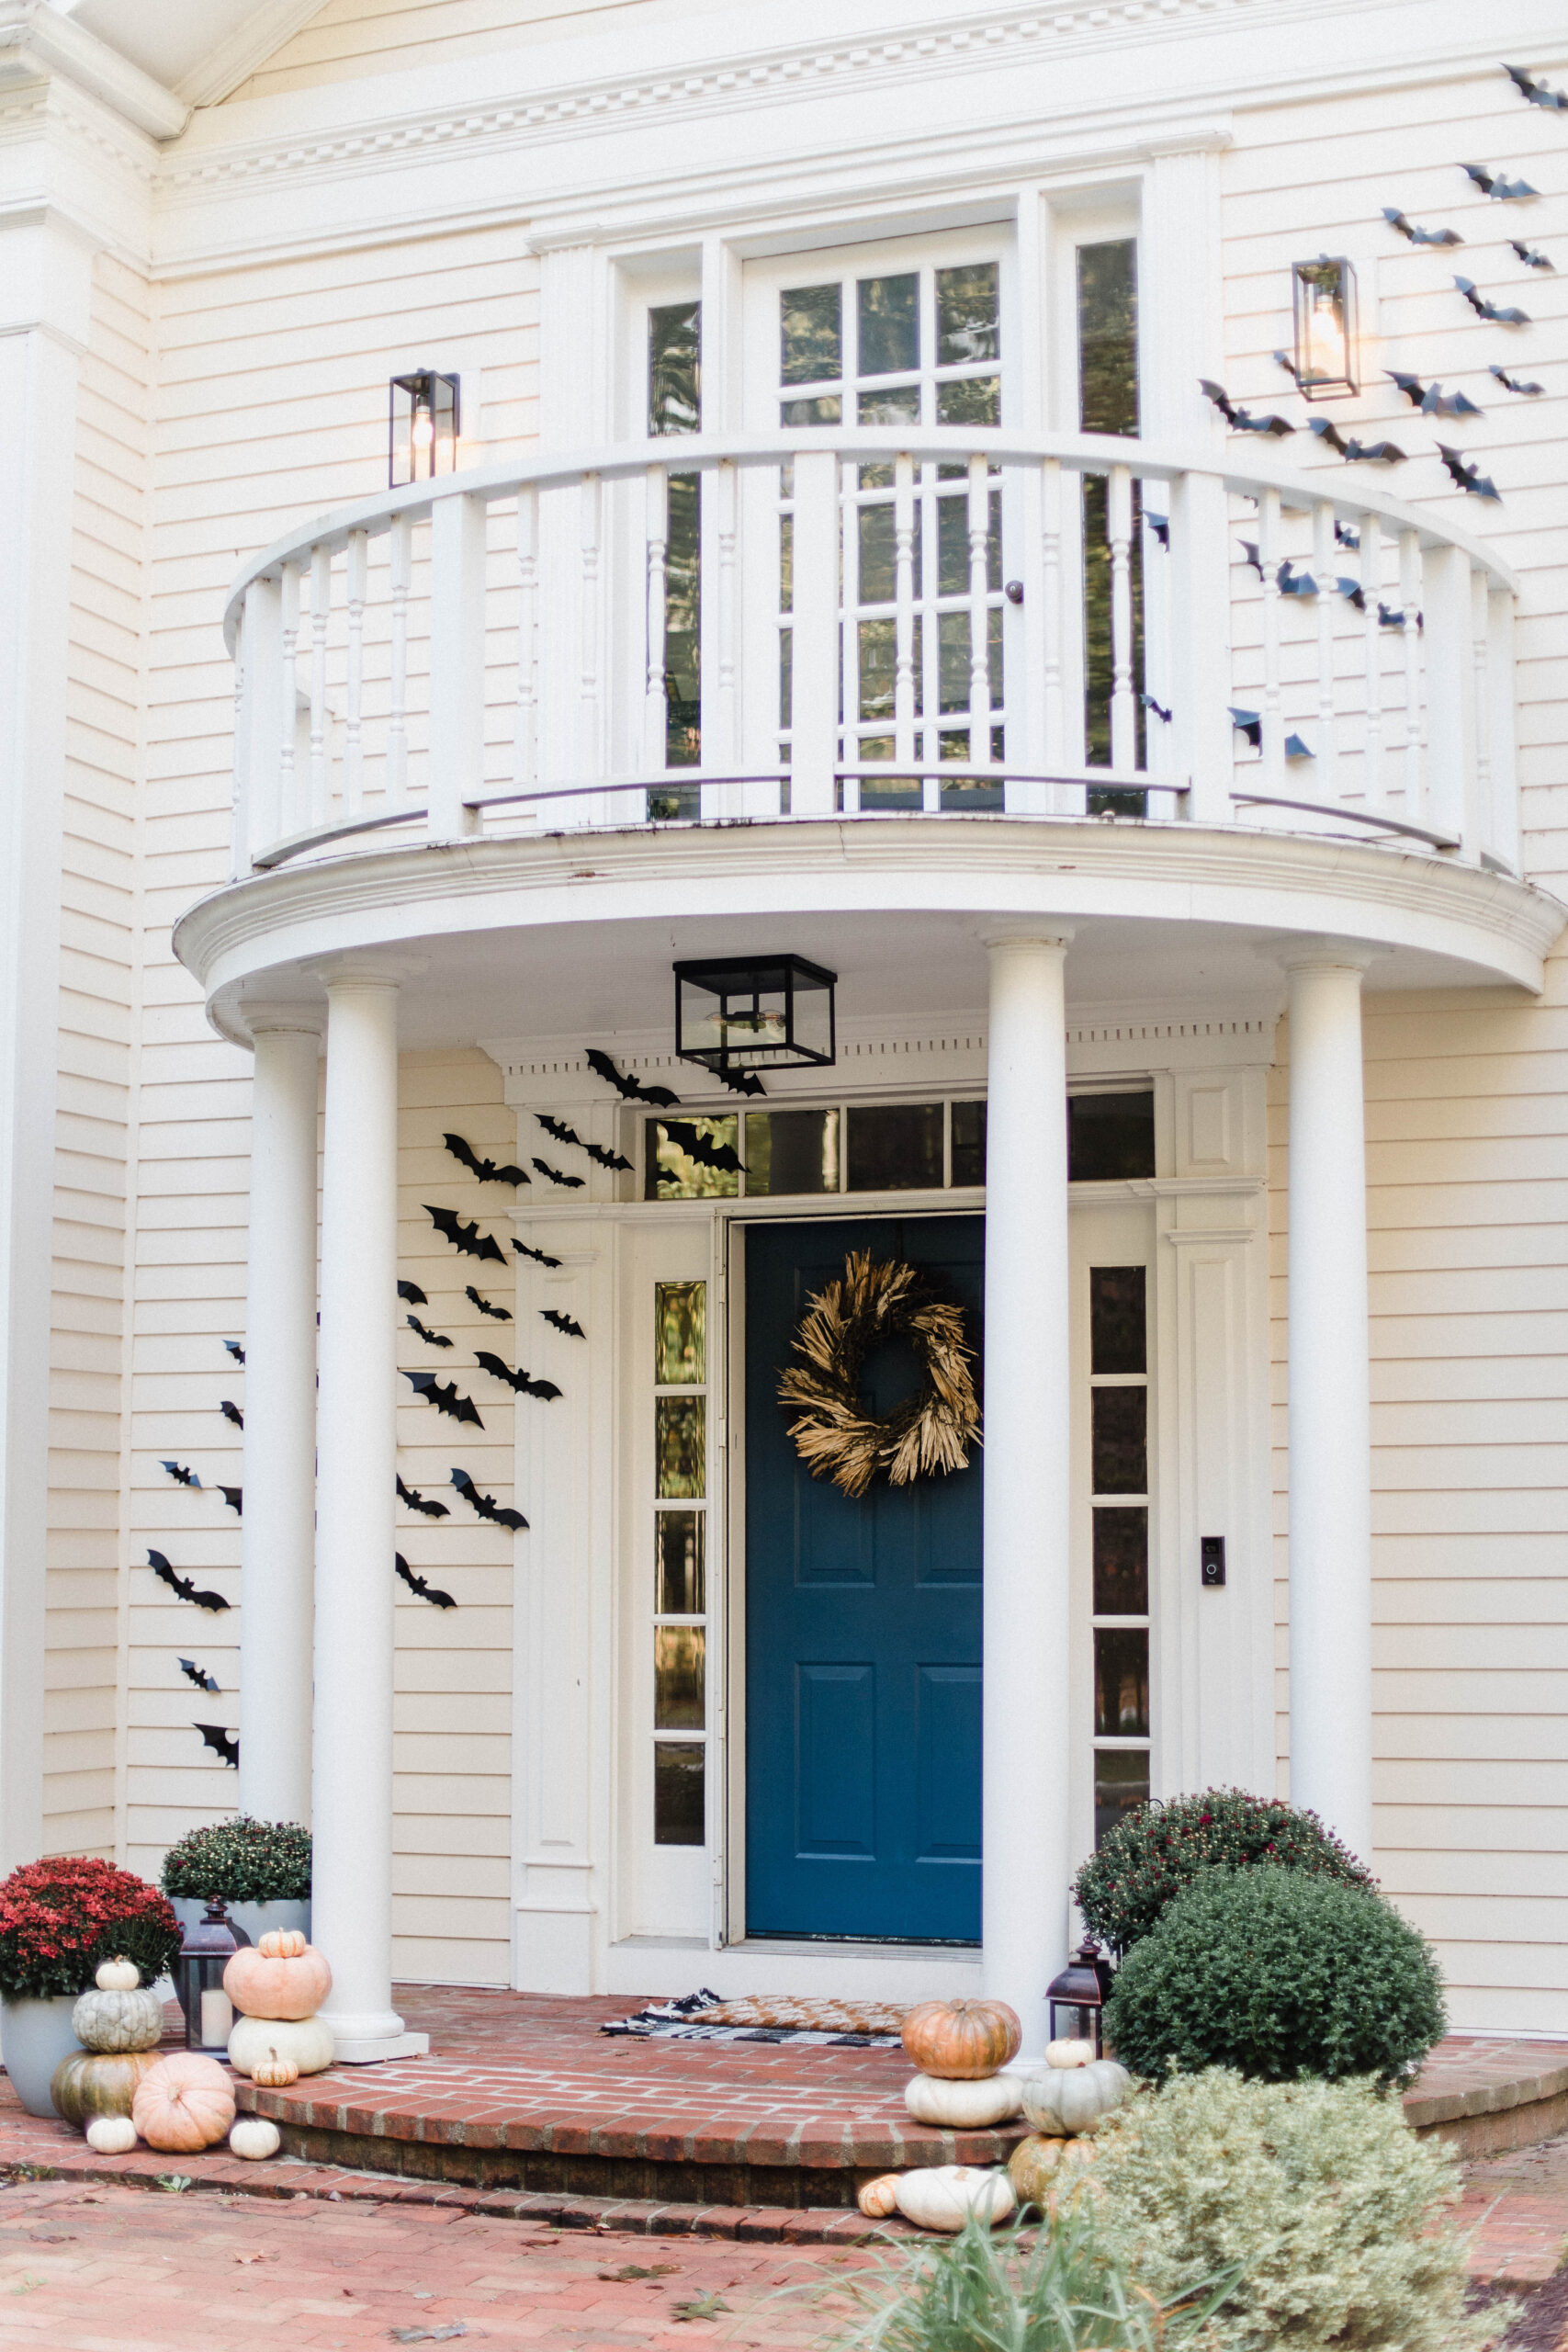 Looking for fall front porch ideas? Connecticut life and style blogger Lauren McBride shares her fall-inspired porch with sources.